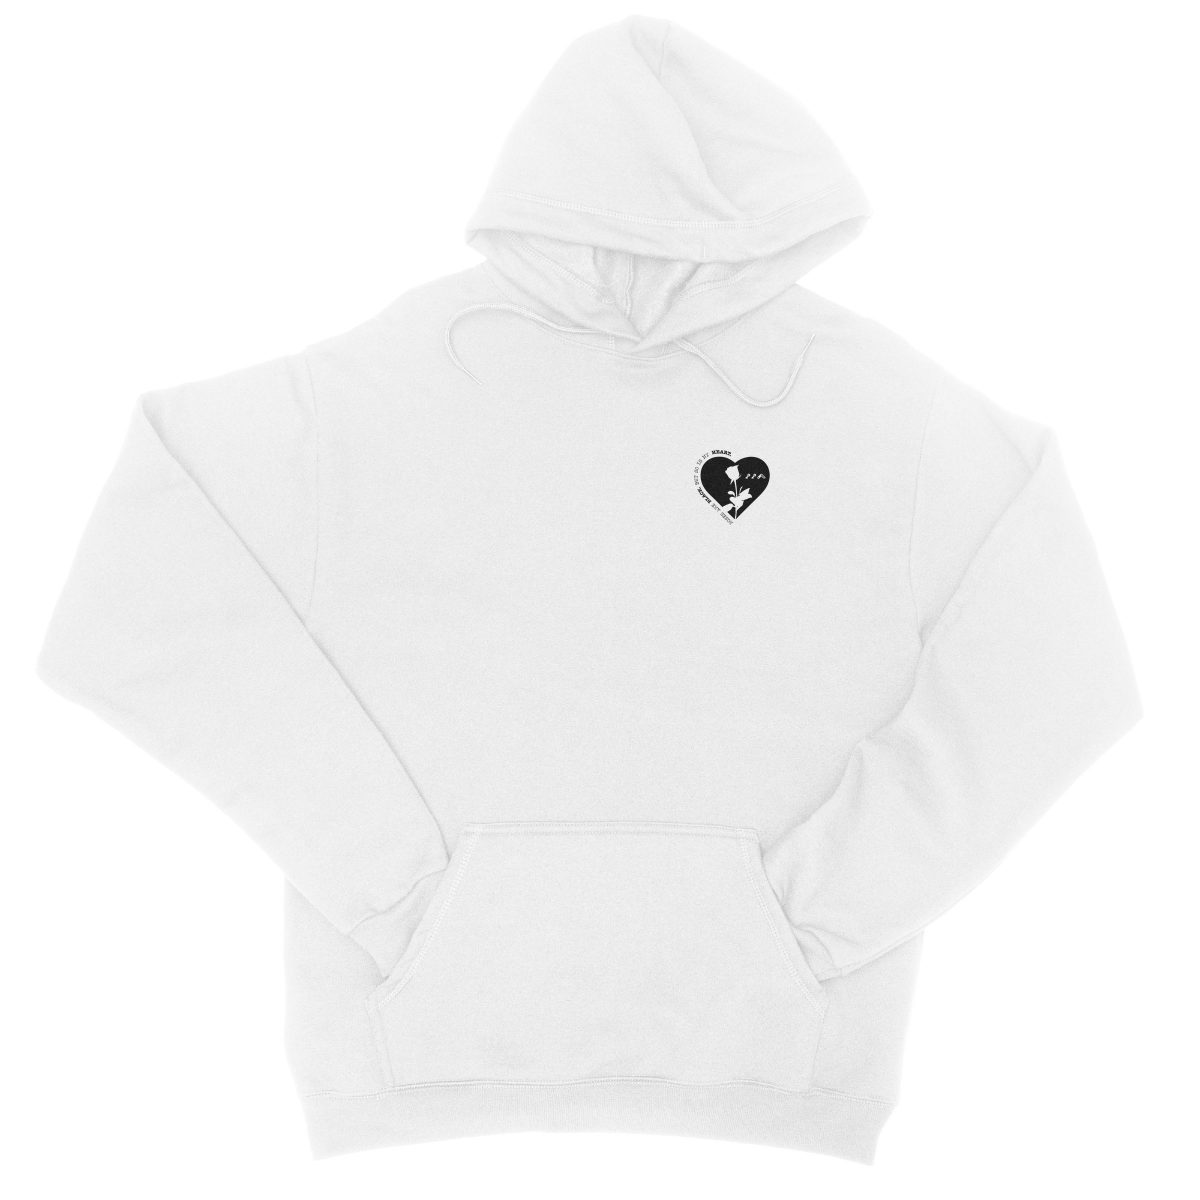 ROSES ARE BLACK BUT SO IS MY HEART hoodie in white by kikicutt